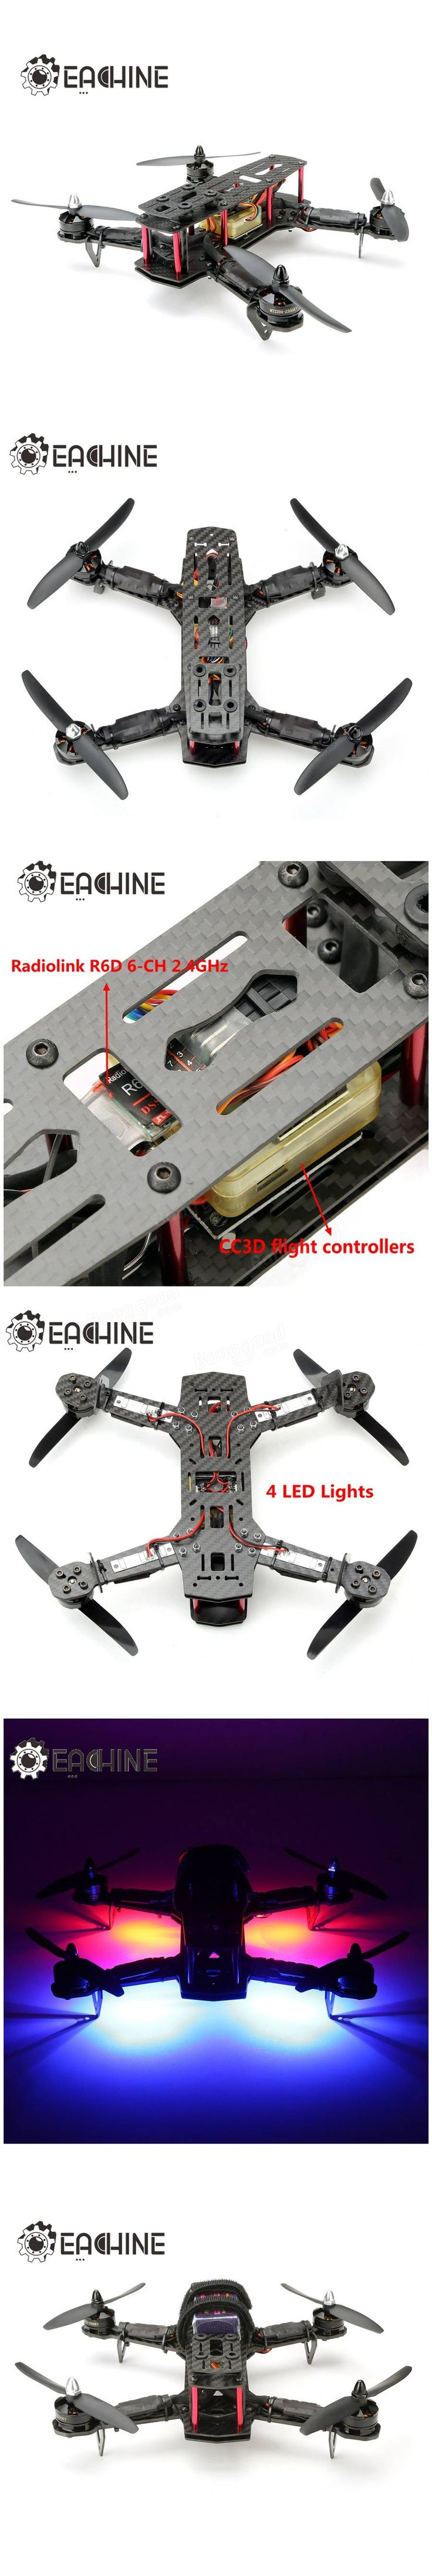 Eachine EC250 Racer Drone With RadioLink 2.4G 9CH AT9 Transmitter R6D CC3D RTF Sale-Banggood.com